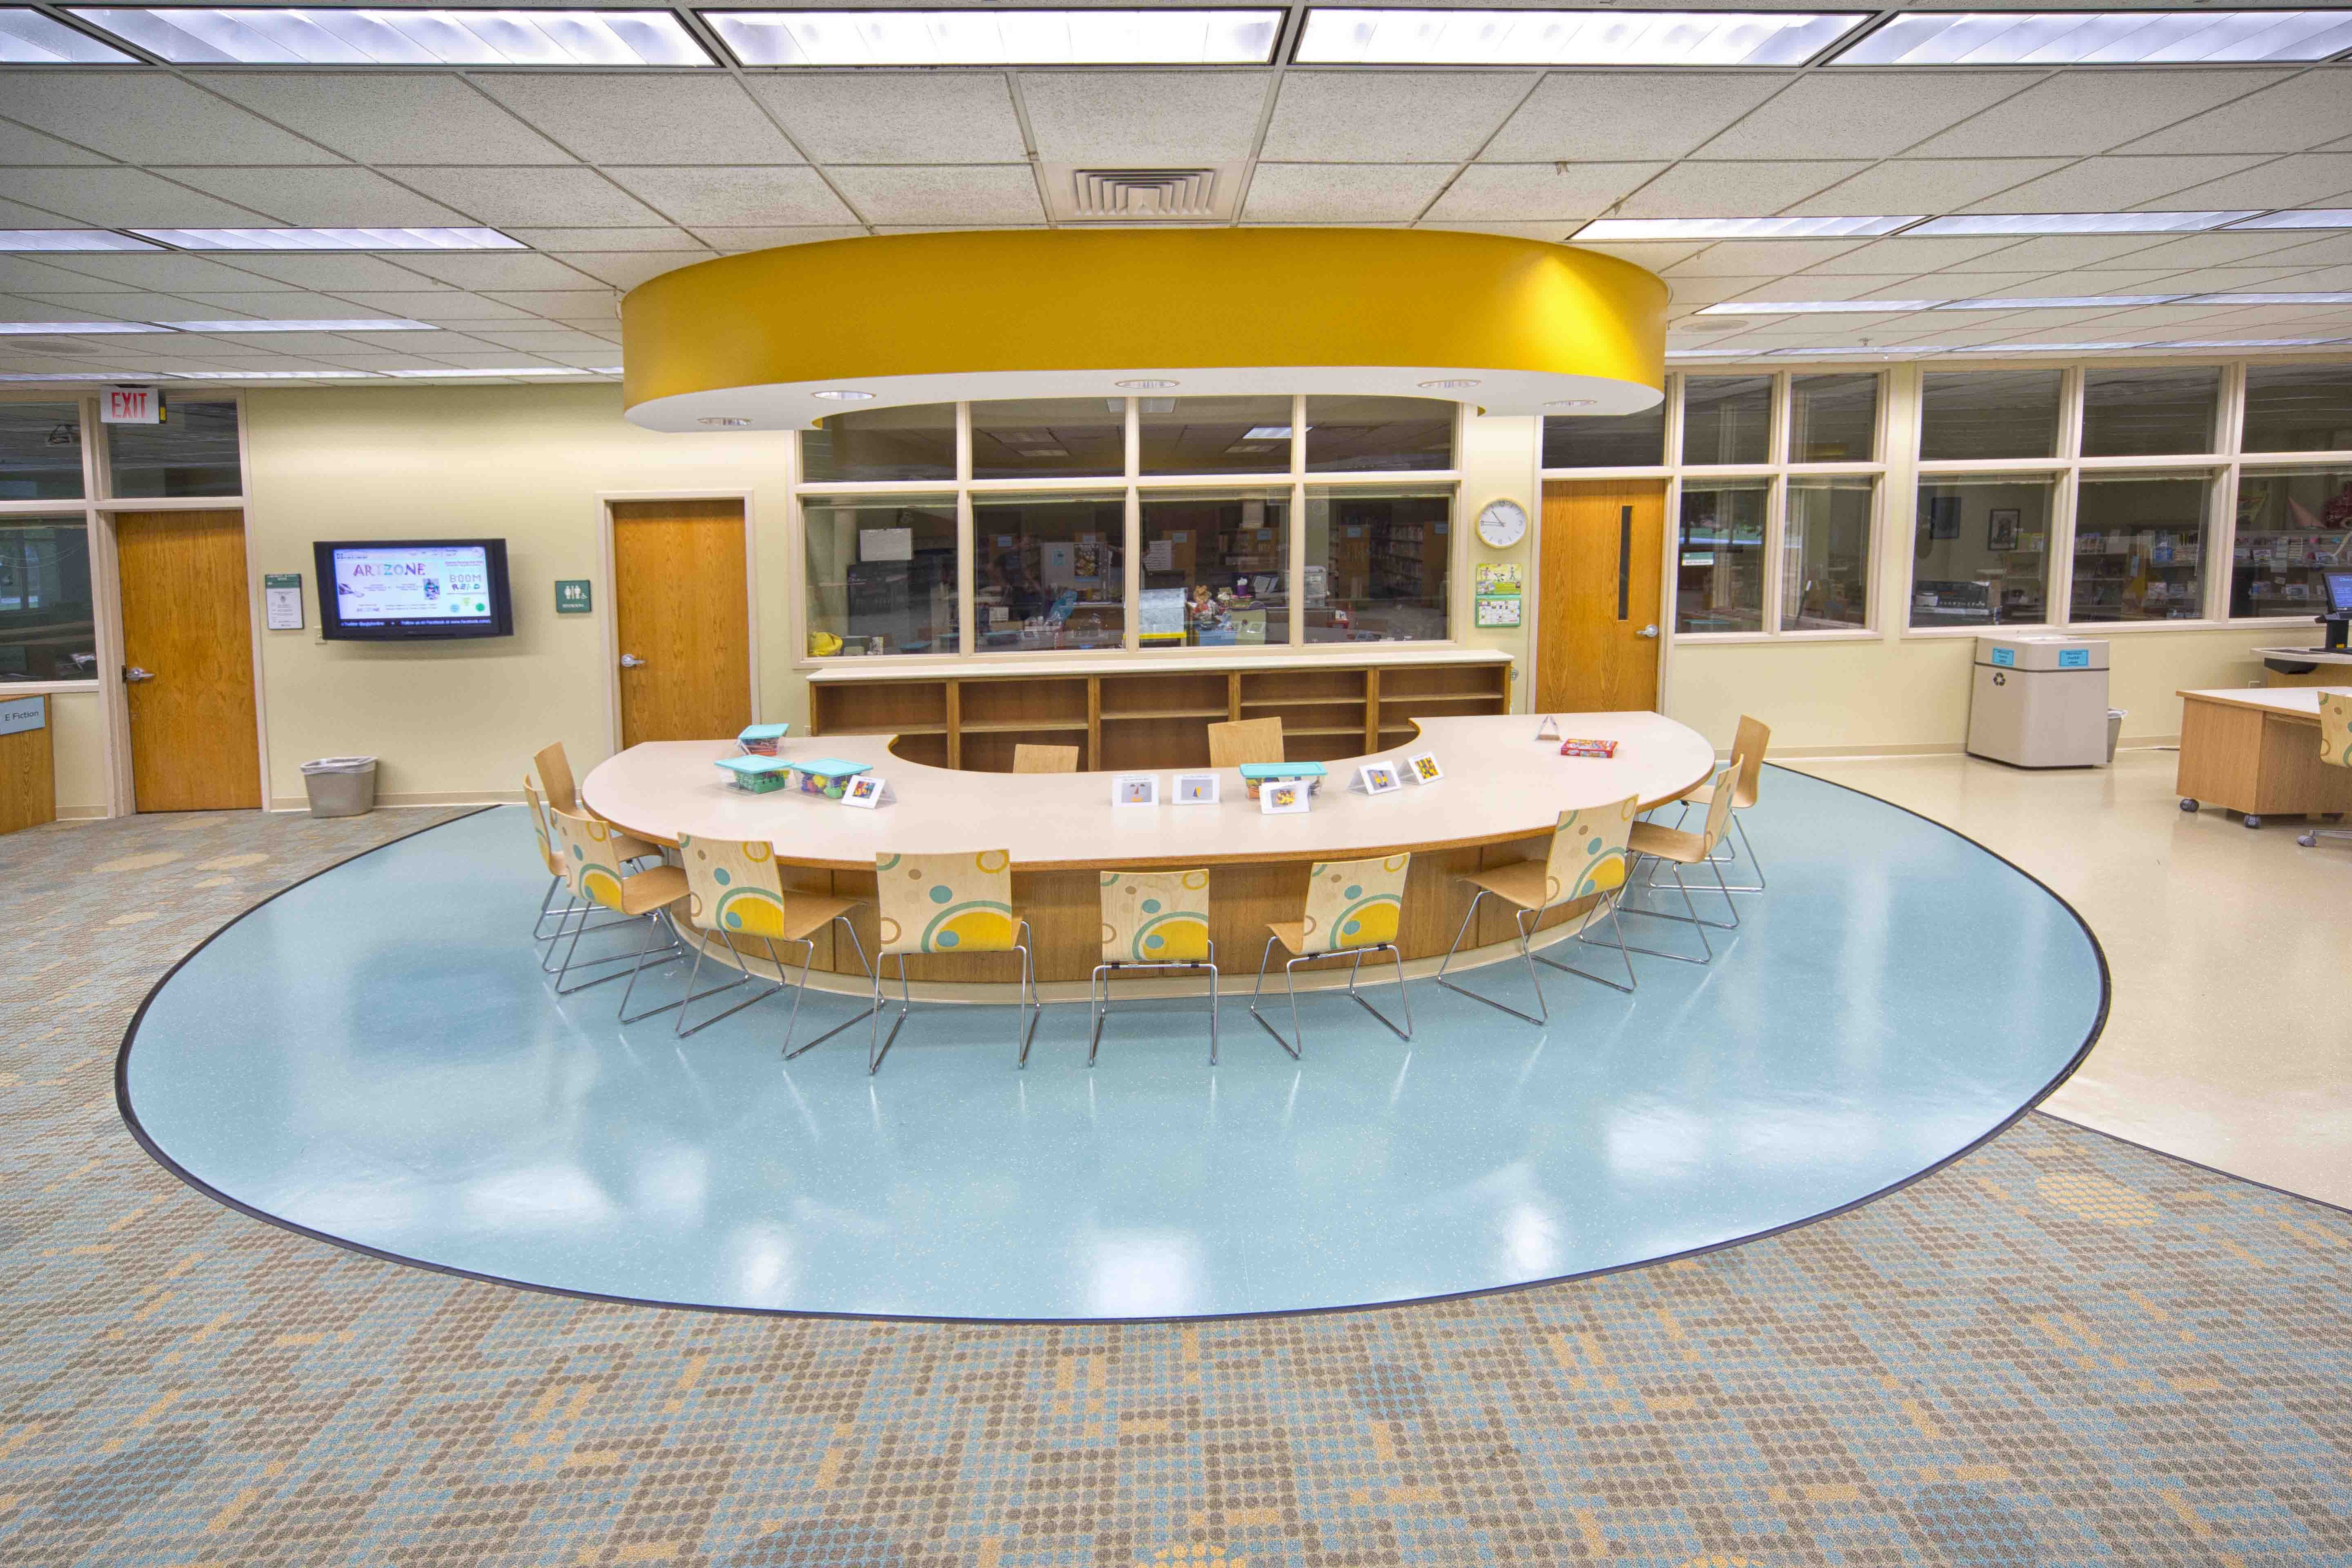 Plainfield-Guilford Public Library Plainfield IN & Library Makerspaces u0026 Lifelong Learning